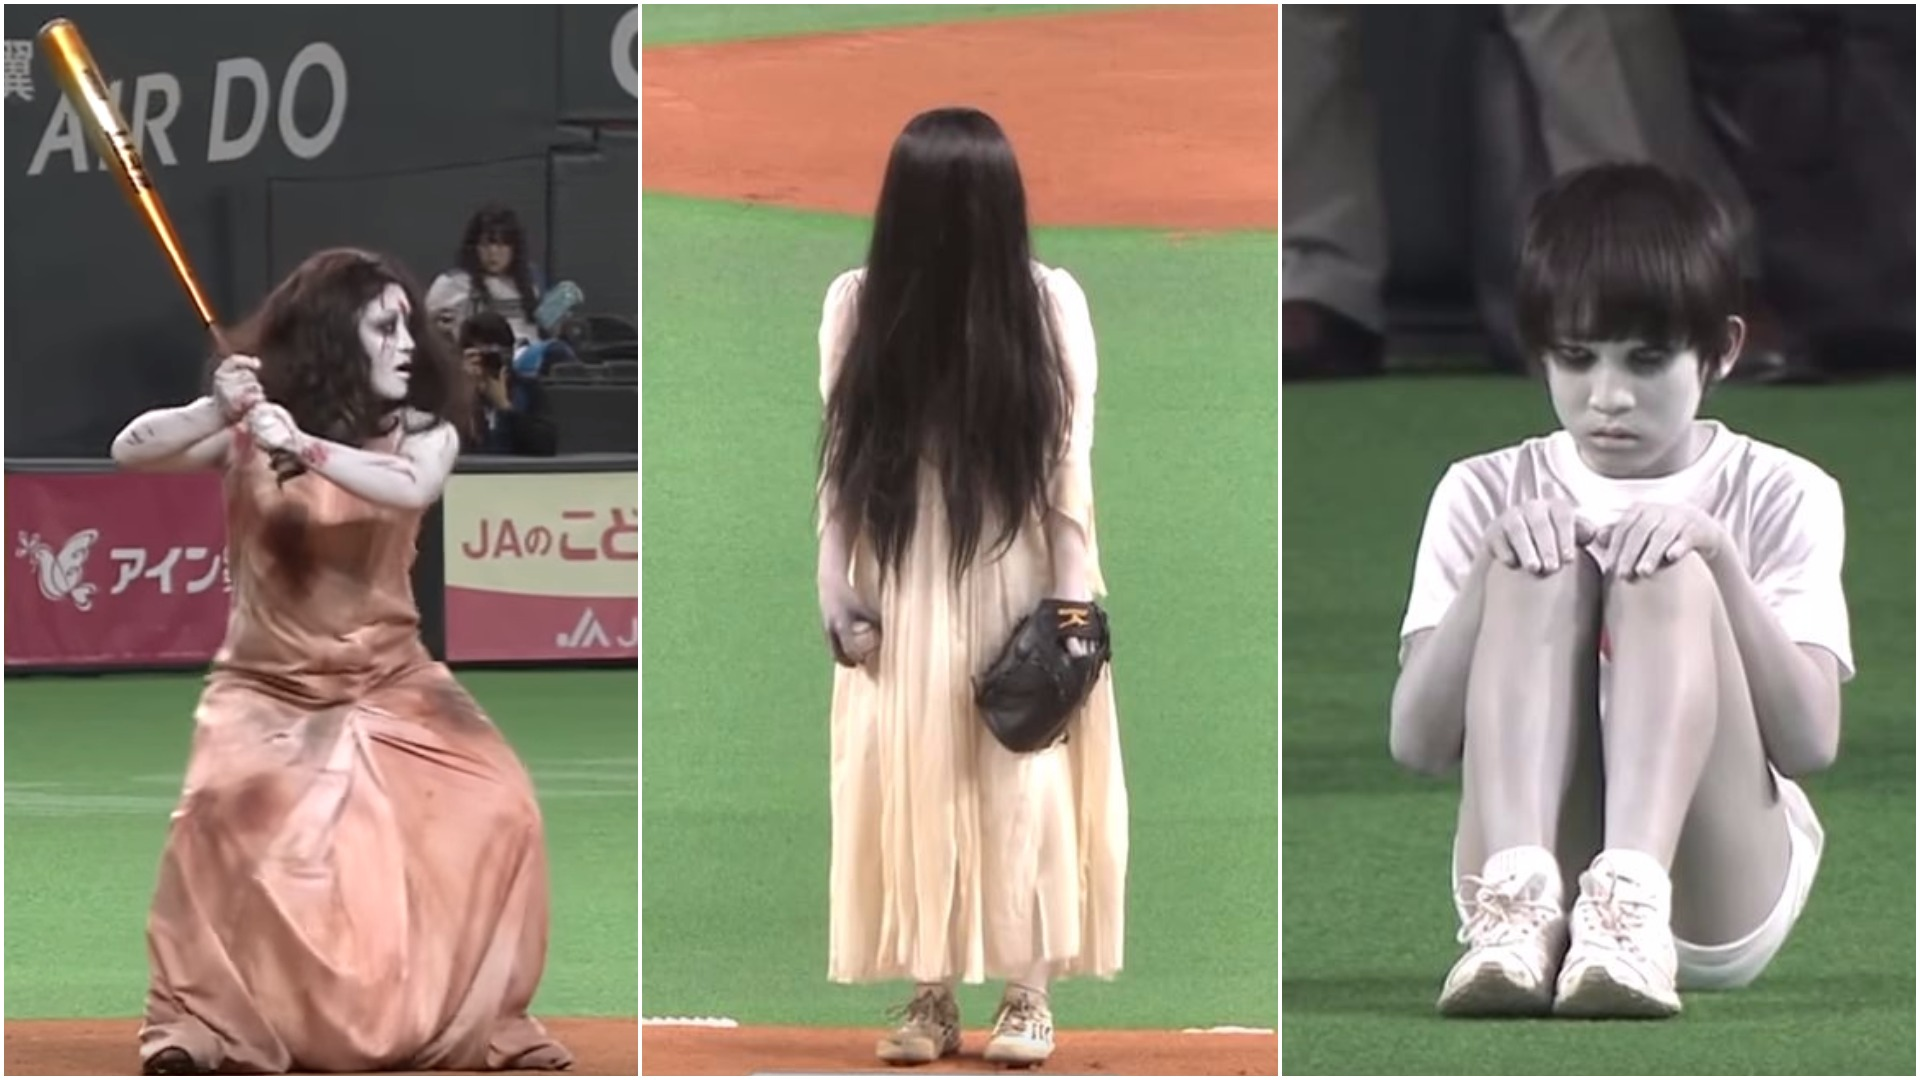 WATCH: Weirdest promo stunt ever sees The Grudge and The Ring facing off in baseball match